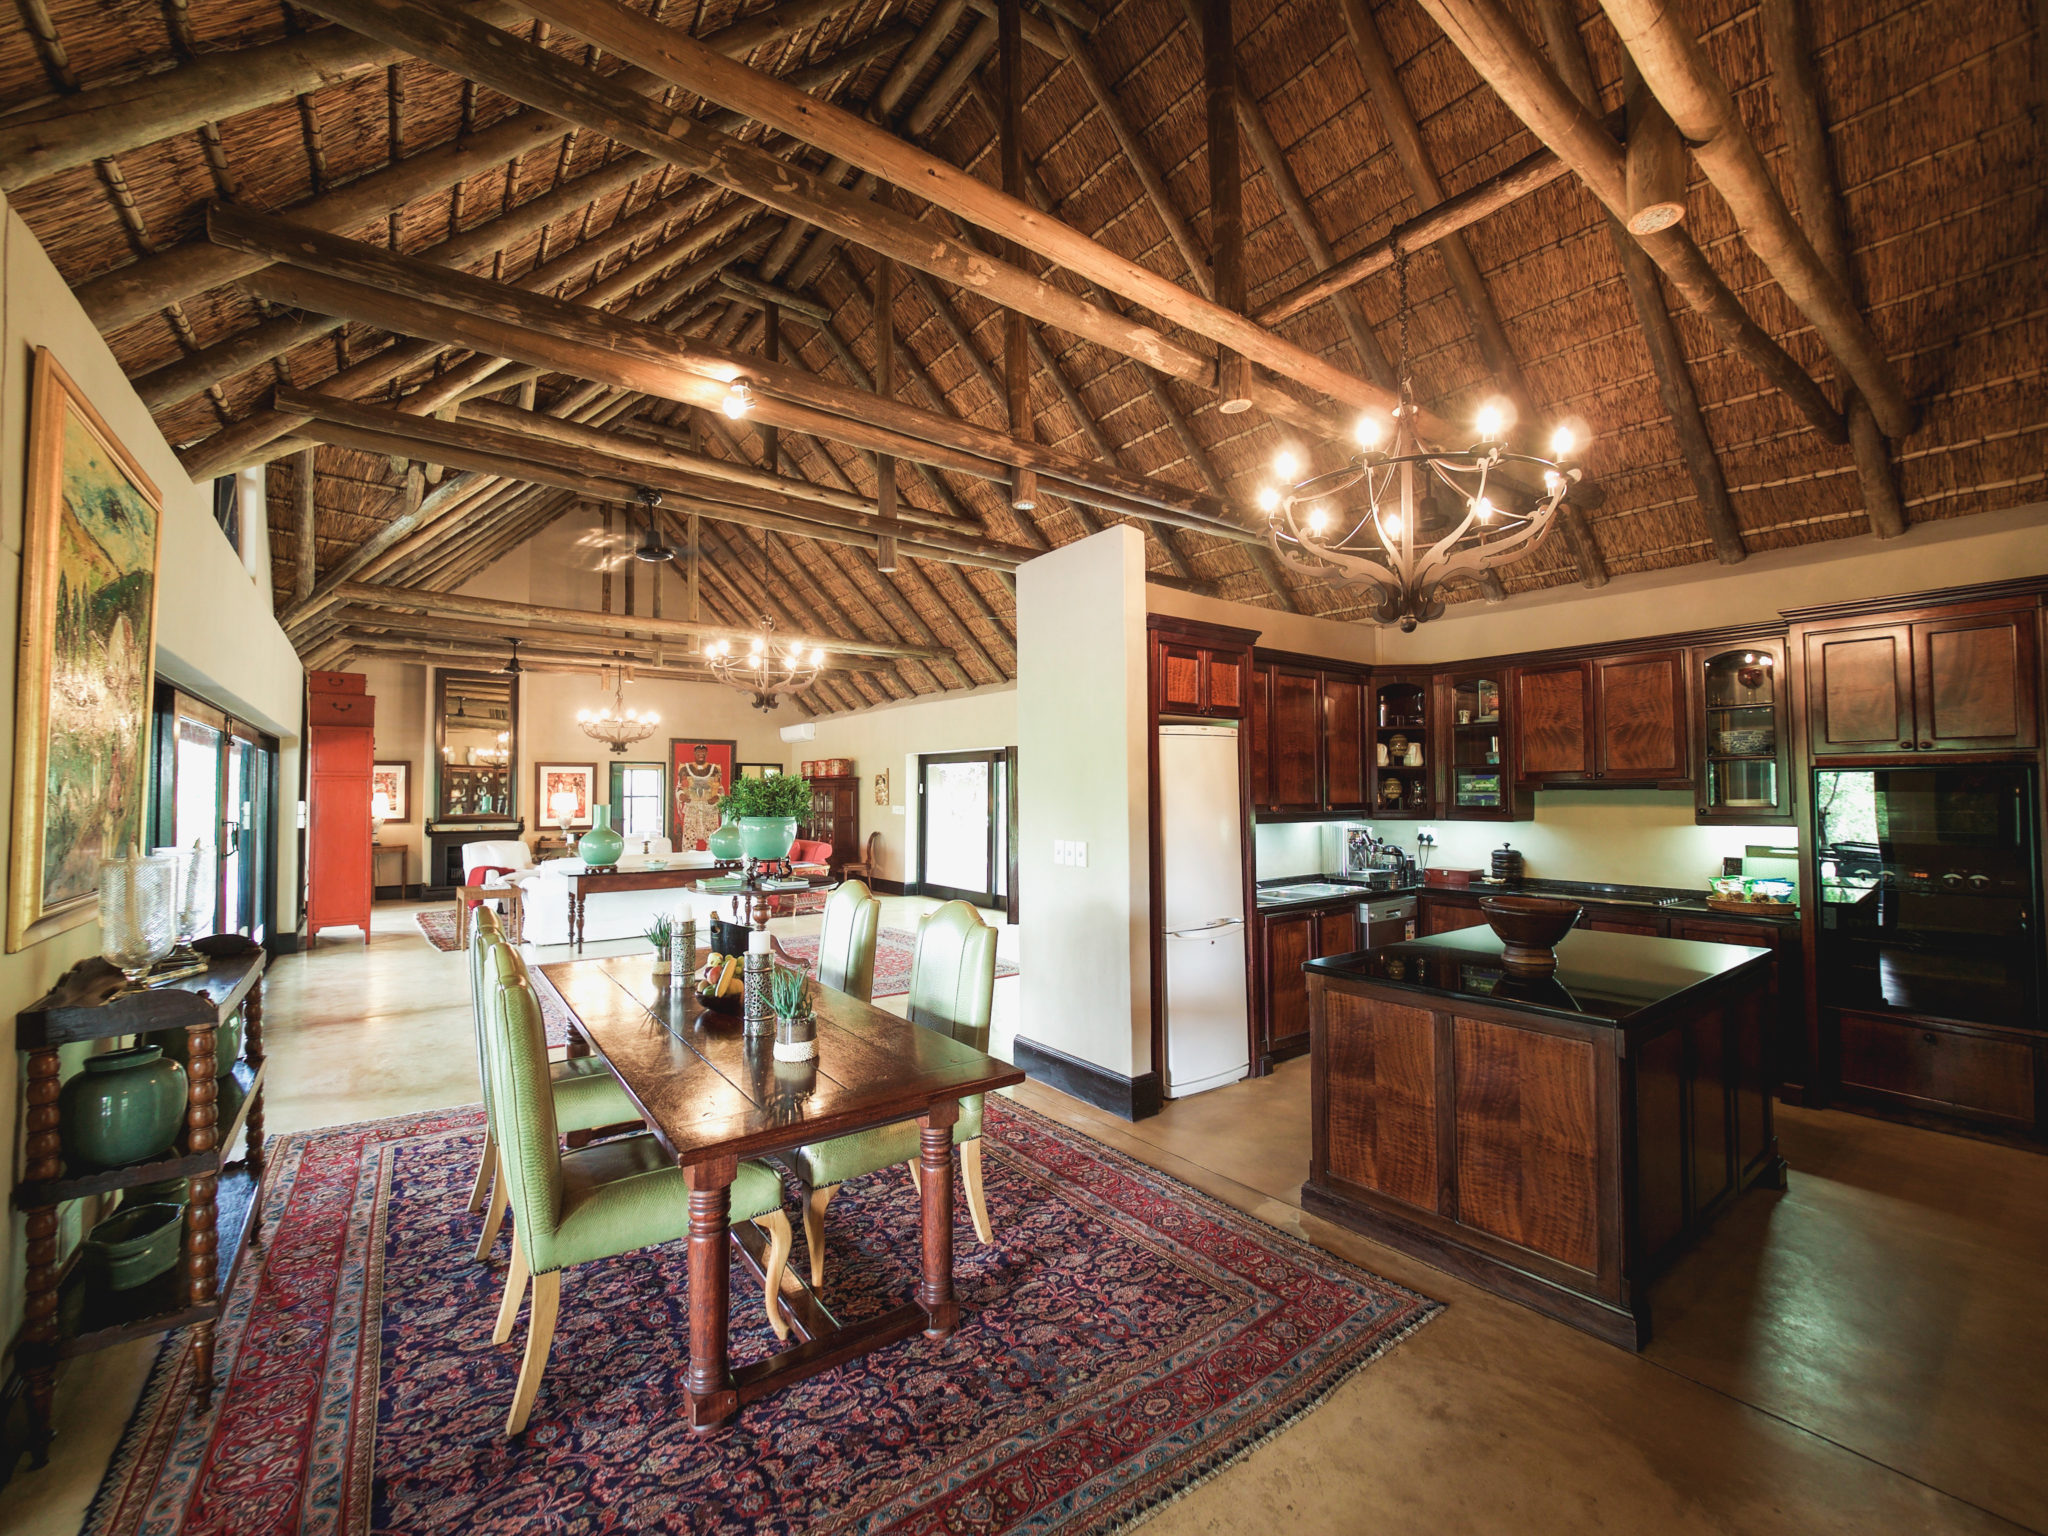 Royal Malewane Safari South Africa | WORLD OF WANDERLUST